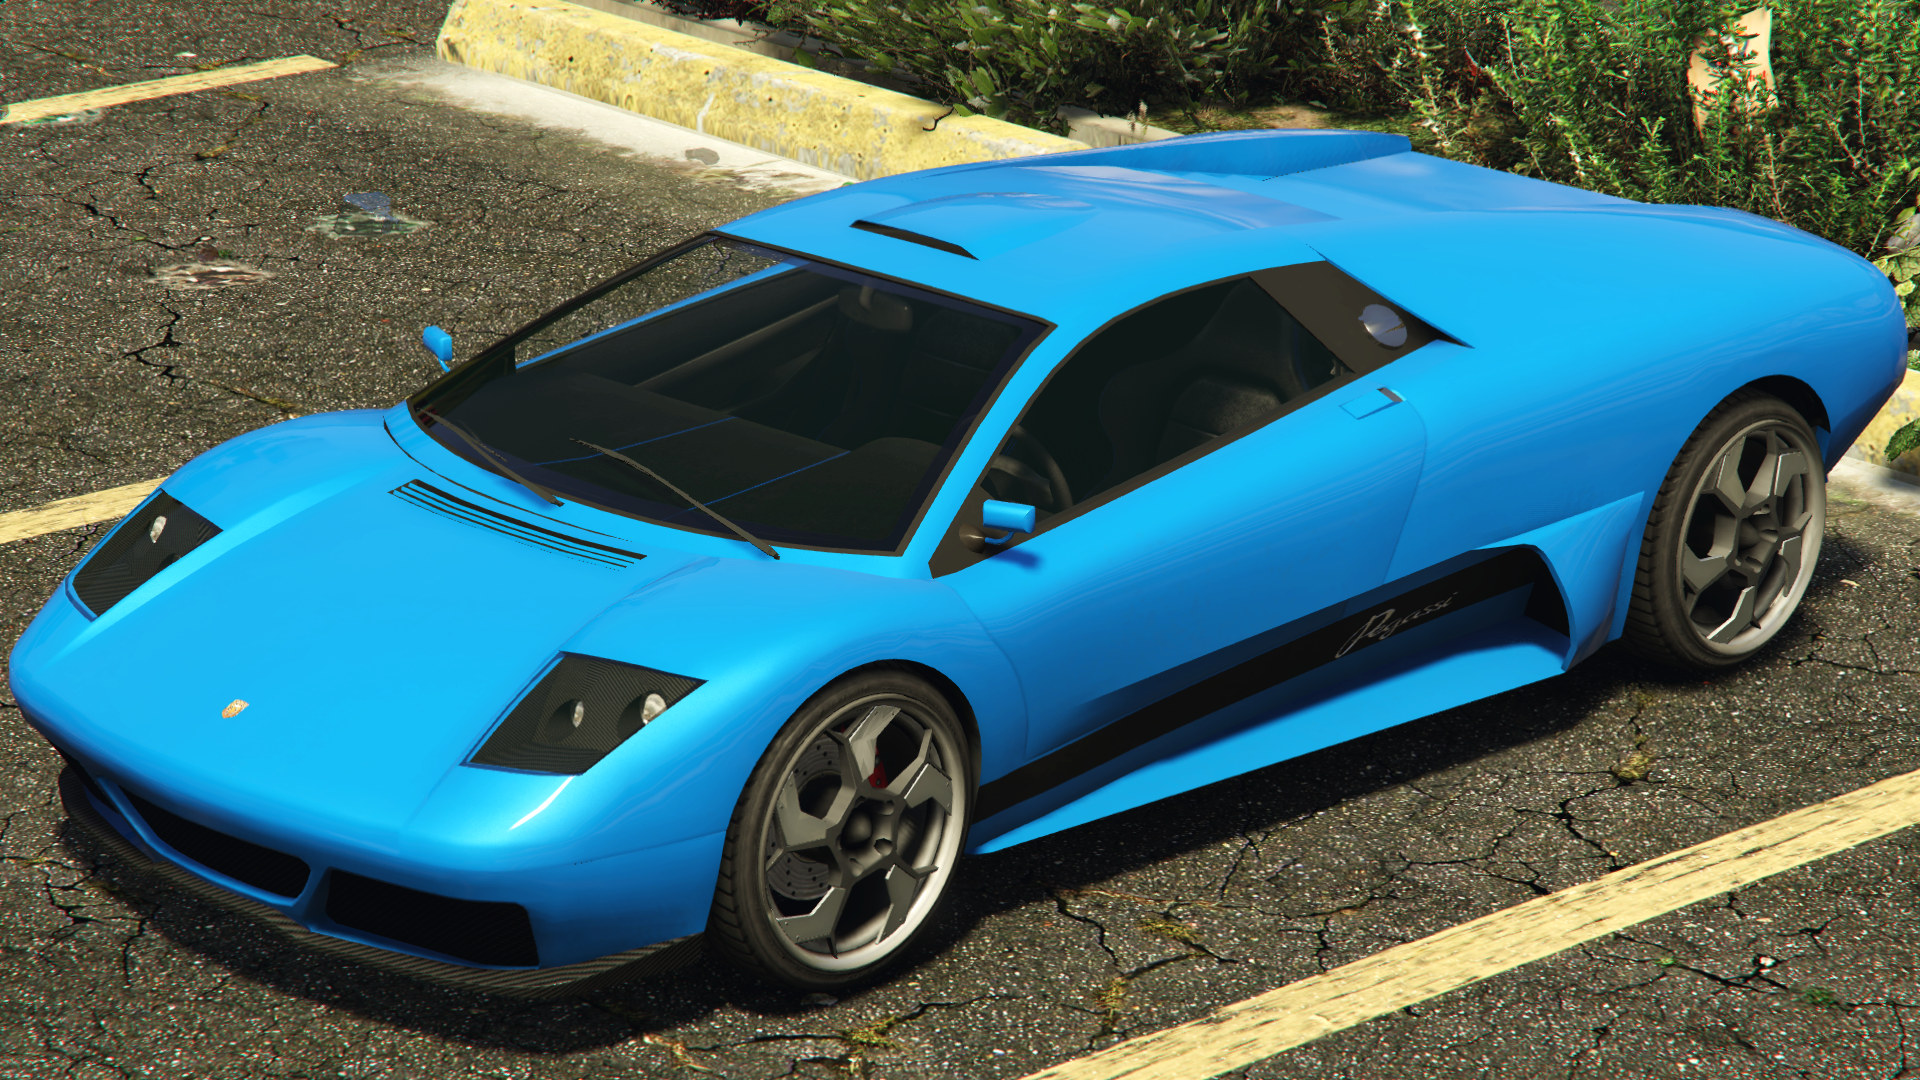 Gta 5 Cars List Rare Cars 4. Awesome Doing Free Gta Modded Accounts ...